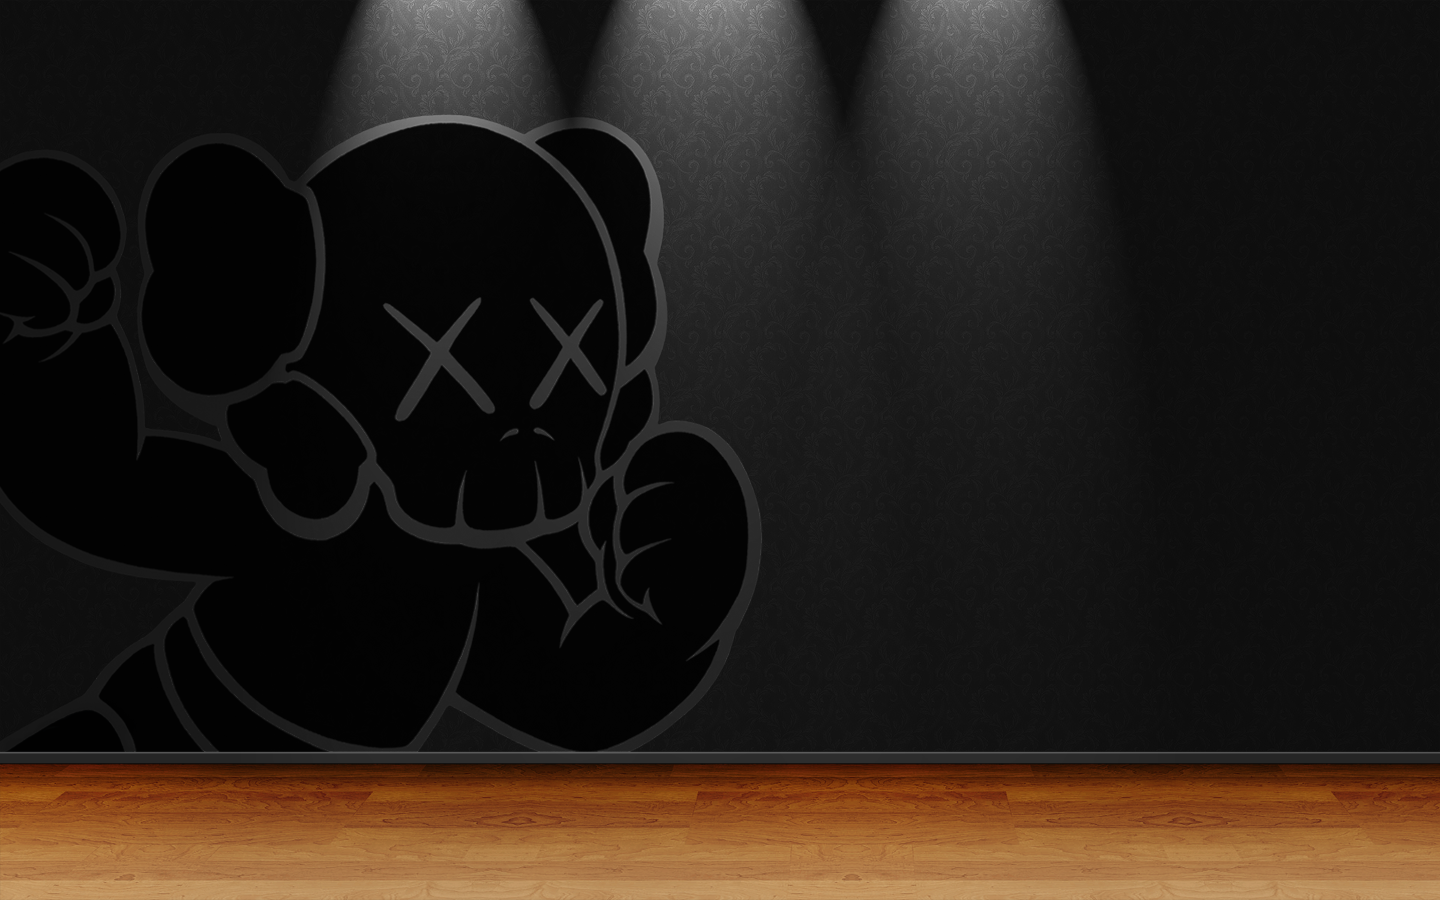 Kaws Wallpaper Iphone Dramatic kaws by steeeez 1440x900